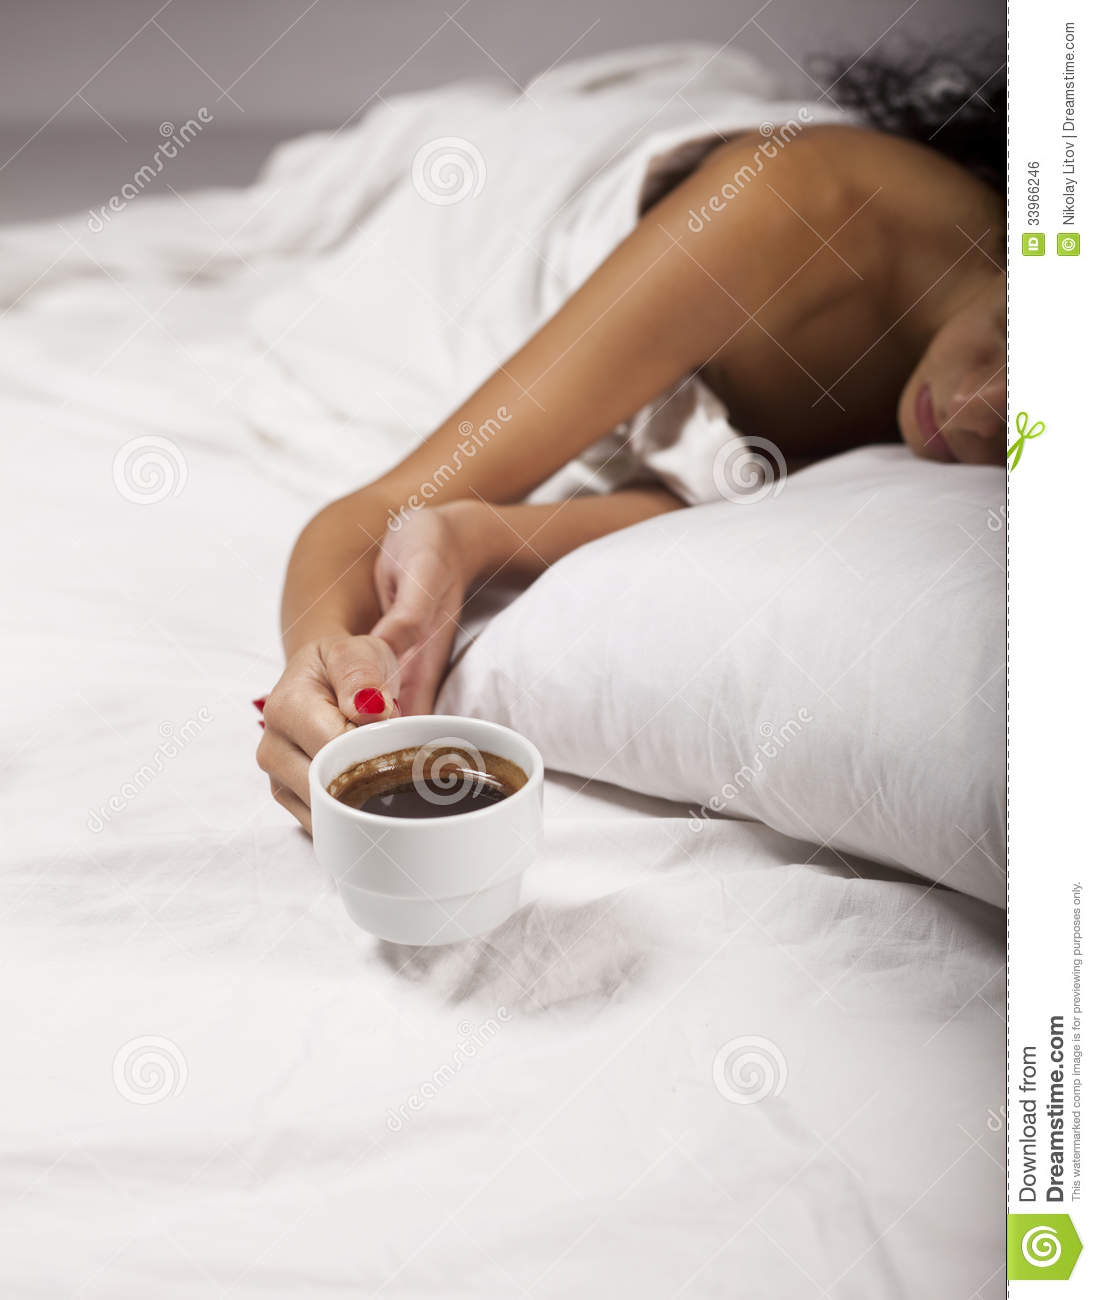 Coffee In Bed Royalty Free Stock Image - Image: 33966246